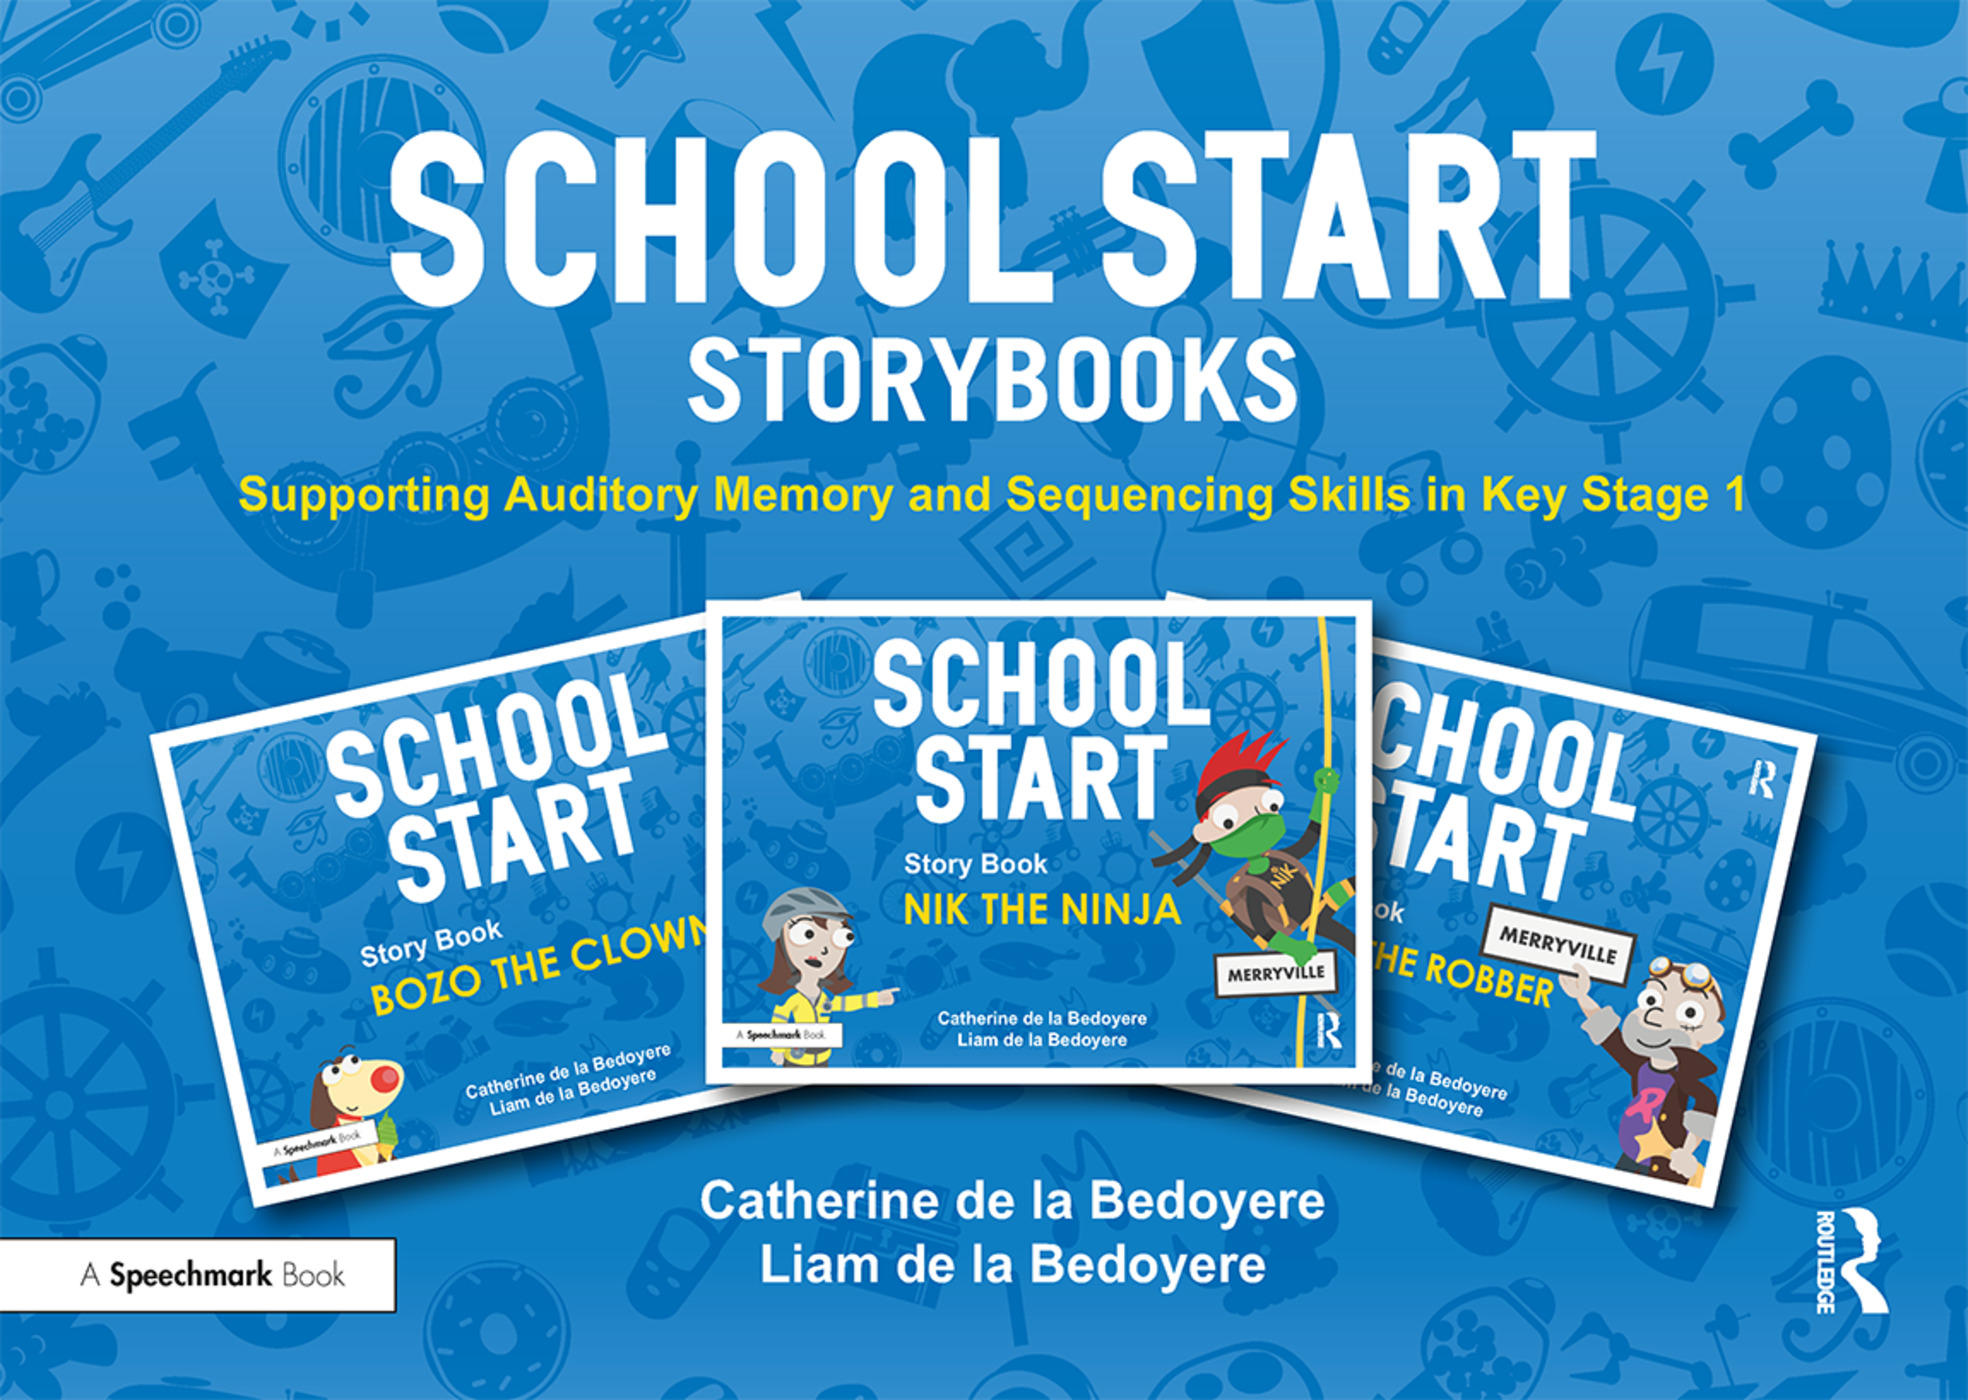 School Start Storybooks: Supporting Auditory Memory and Sequencing Skills in Key Stage 1 book cover